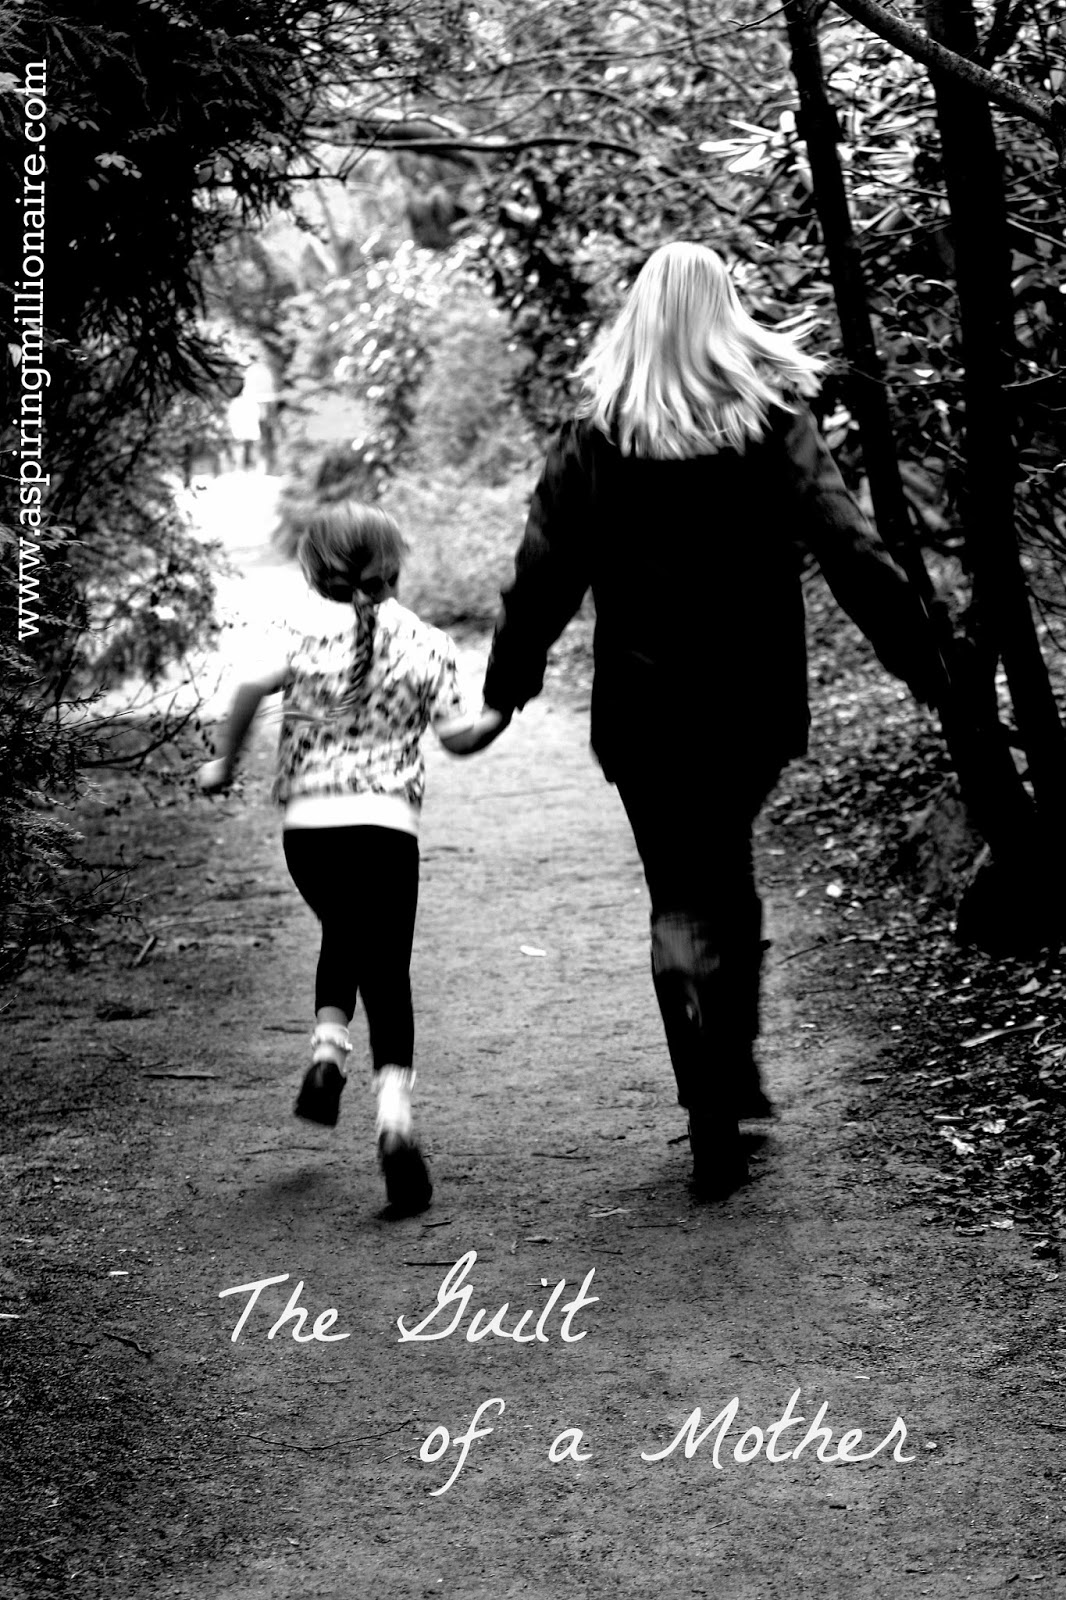 mom and girl walking